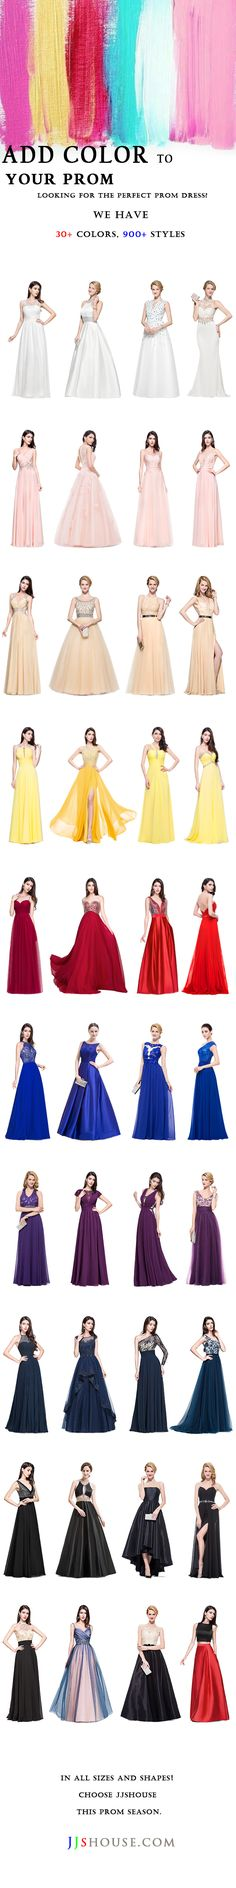 Add Color To Your Prom. Plenty of styles, colors, sizes available at JJsHouse.com. Get ready for this coming prom season! Sparkle & Shine with our Unique dresses, new styles added every week!  #JJsHouse